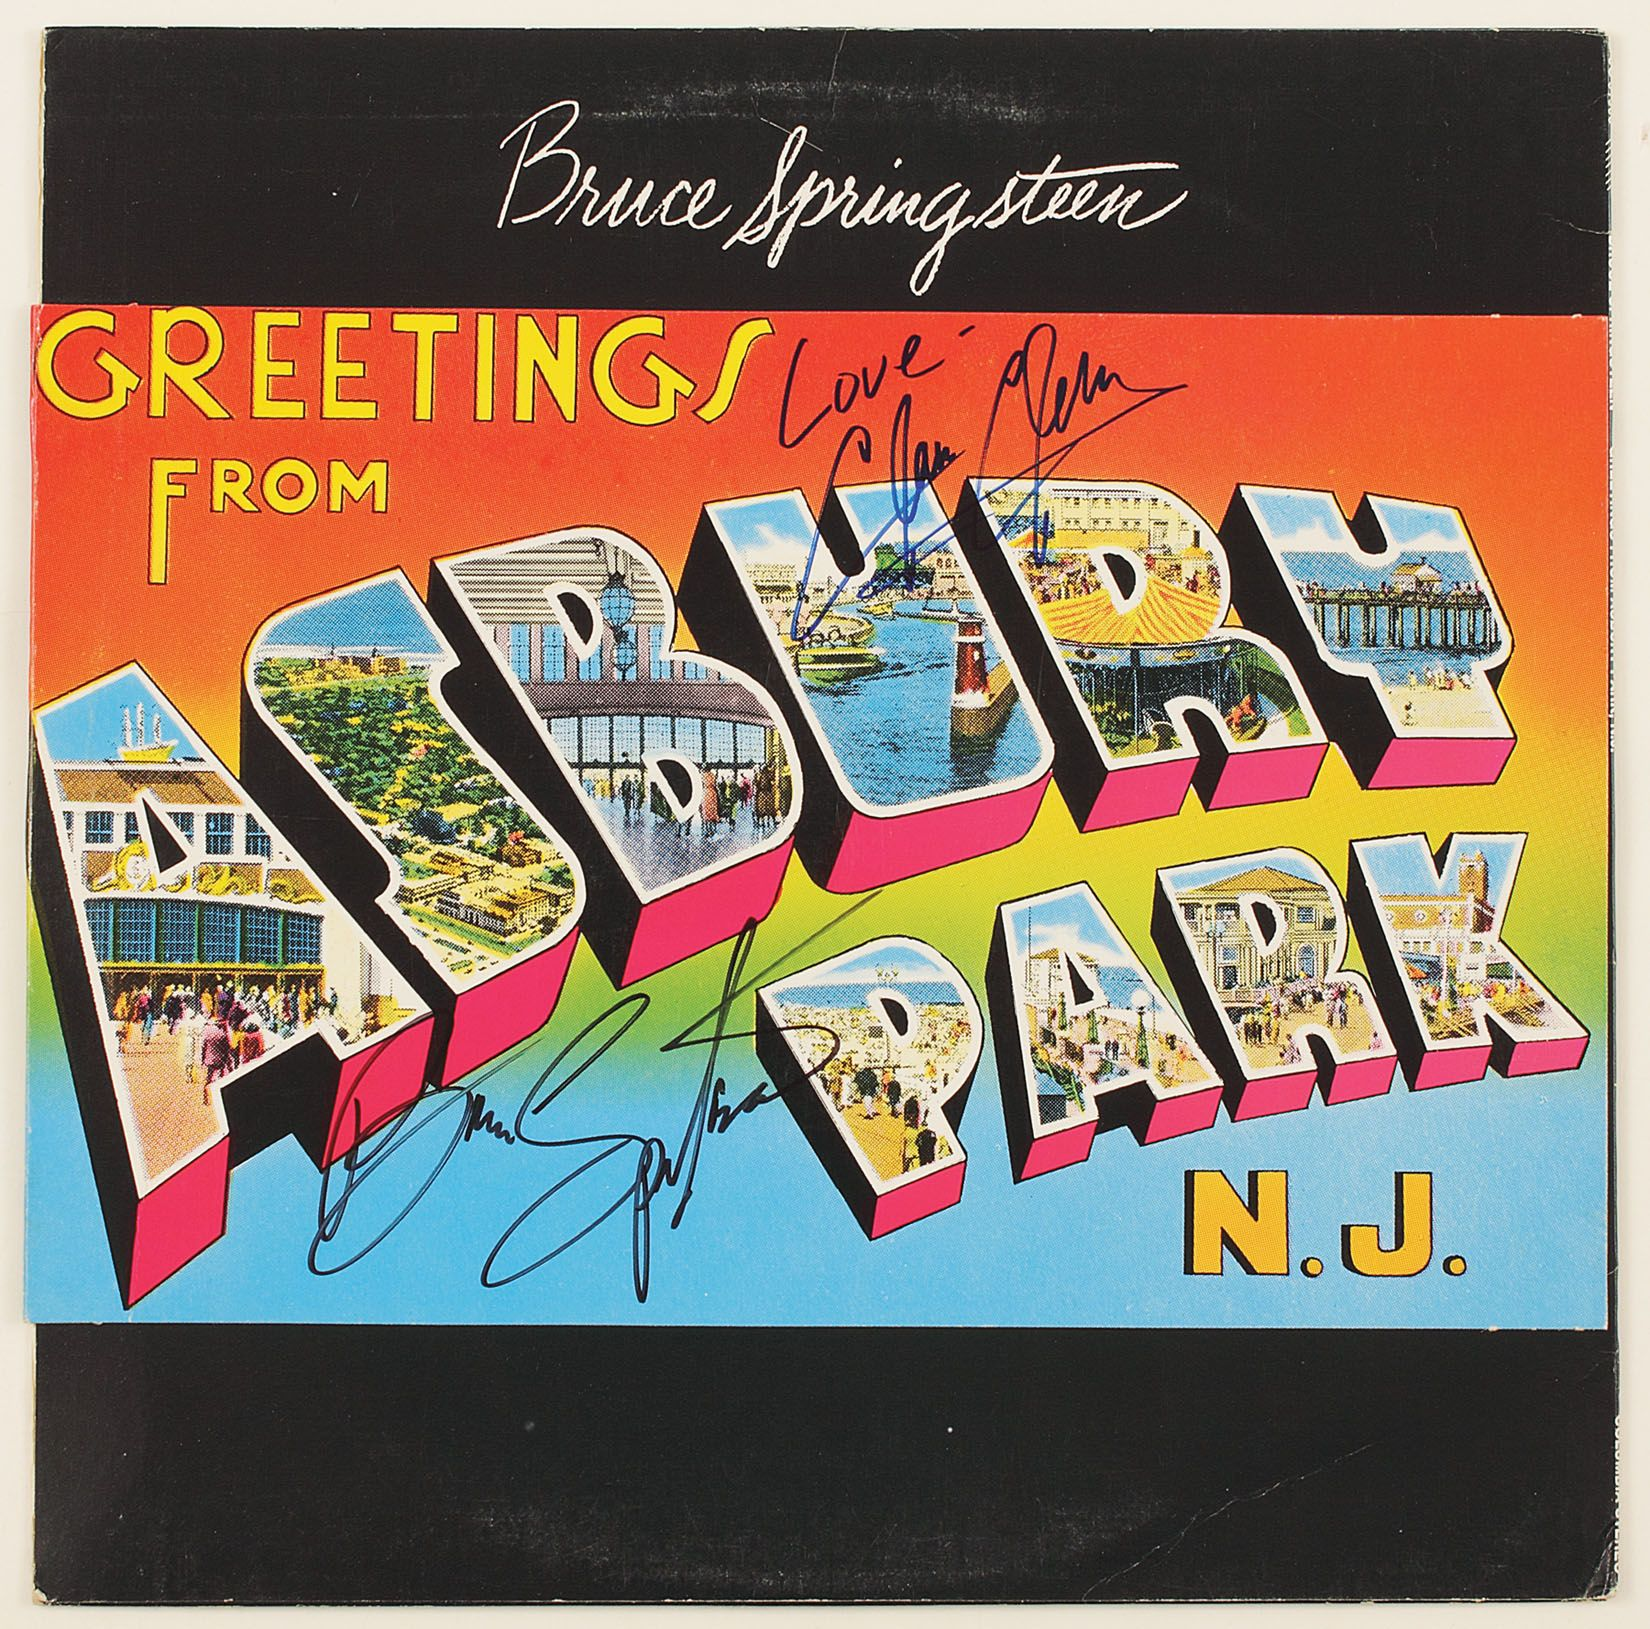 Bruce springsteen greetings from asbury park google search music bruce springsteen greetings from asbury park google search m4hsunfo